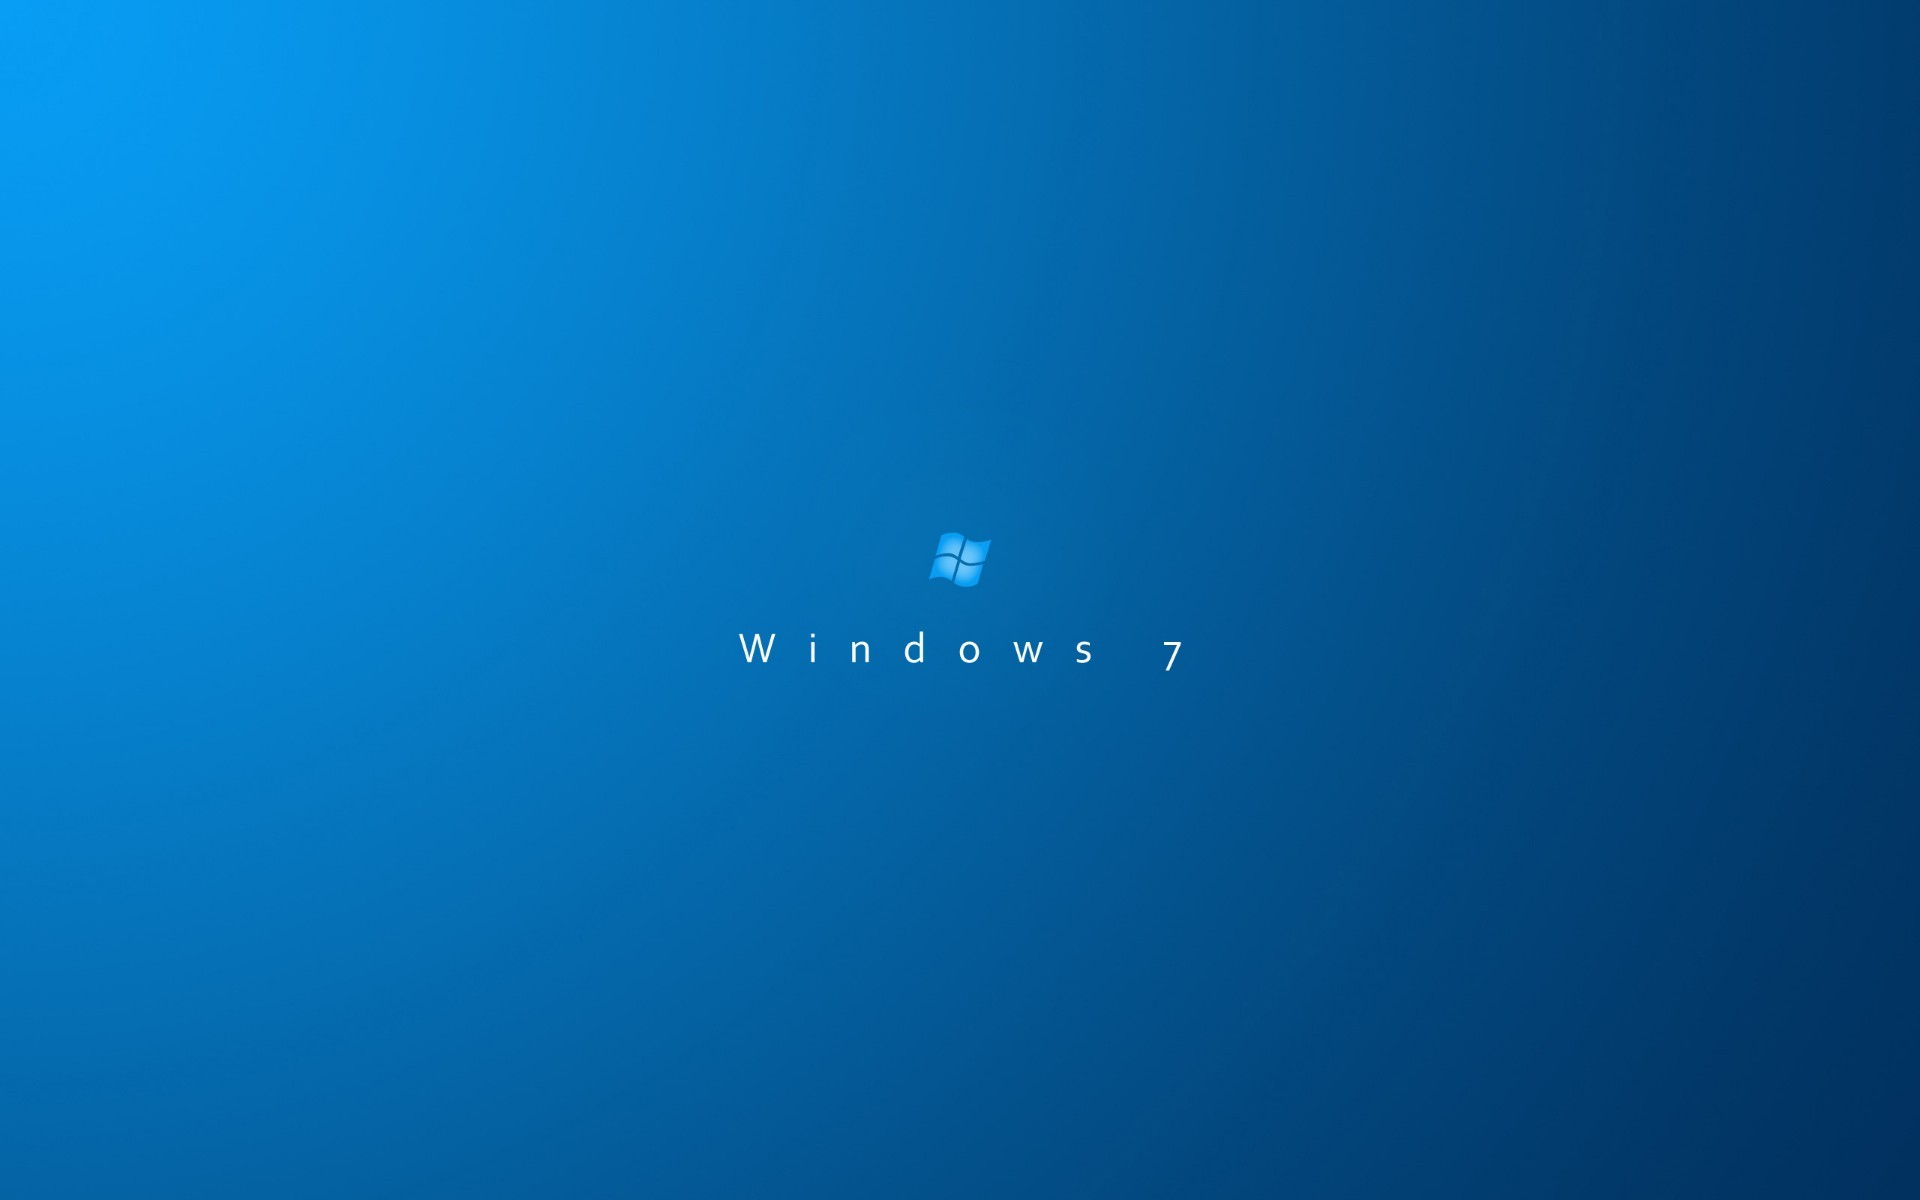 The Windows 7 logo on a blue background